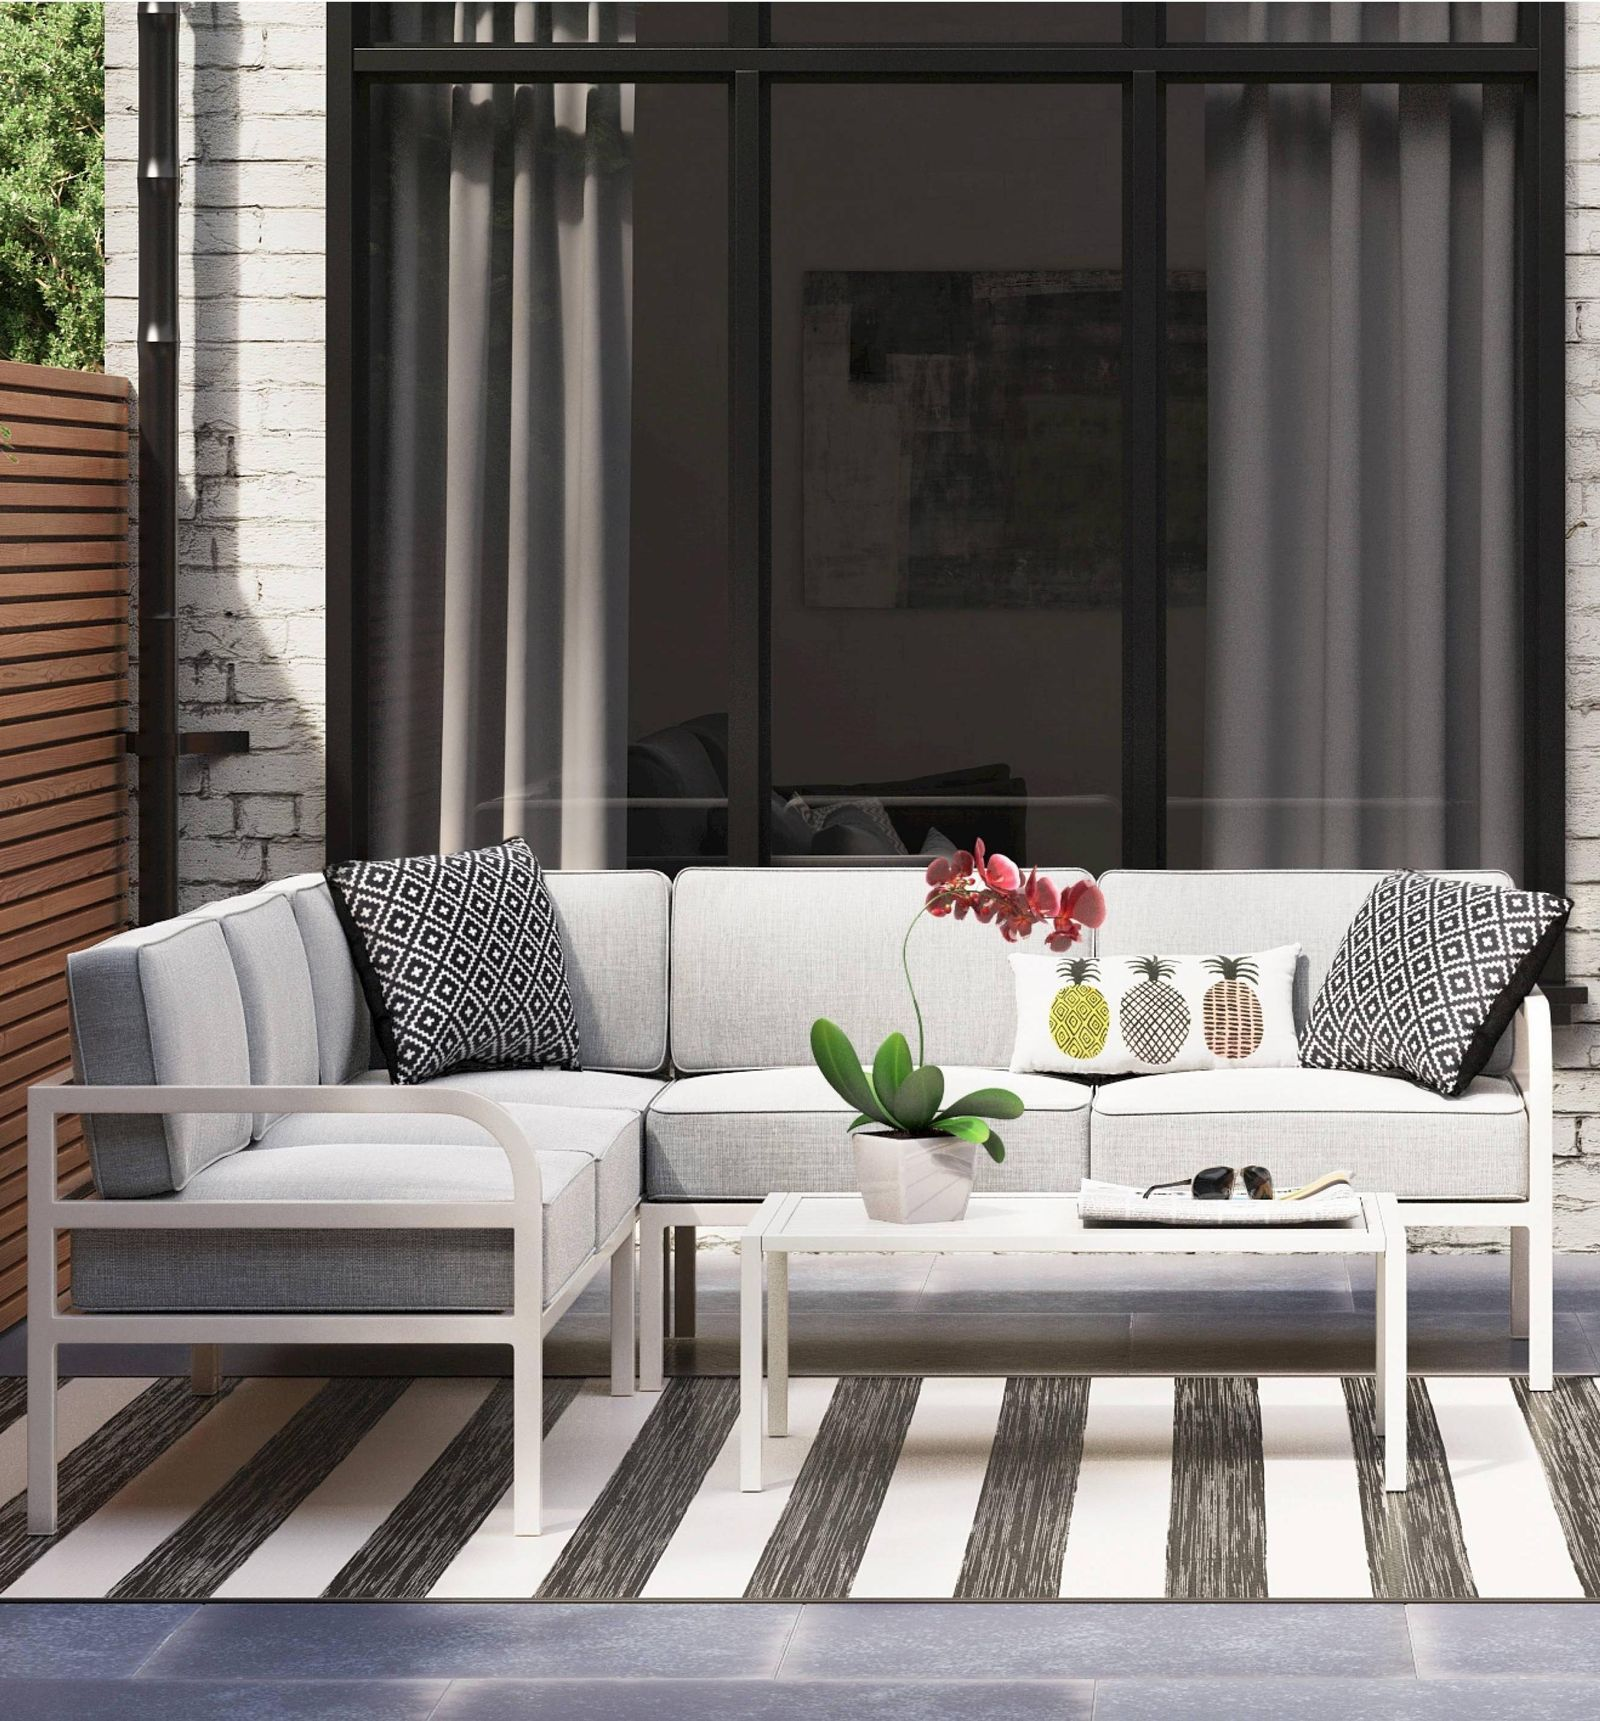 15 Of The Most Amazing Items From Target's New Modern Home